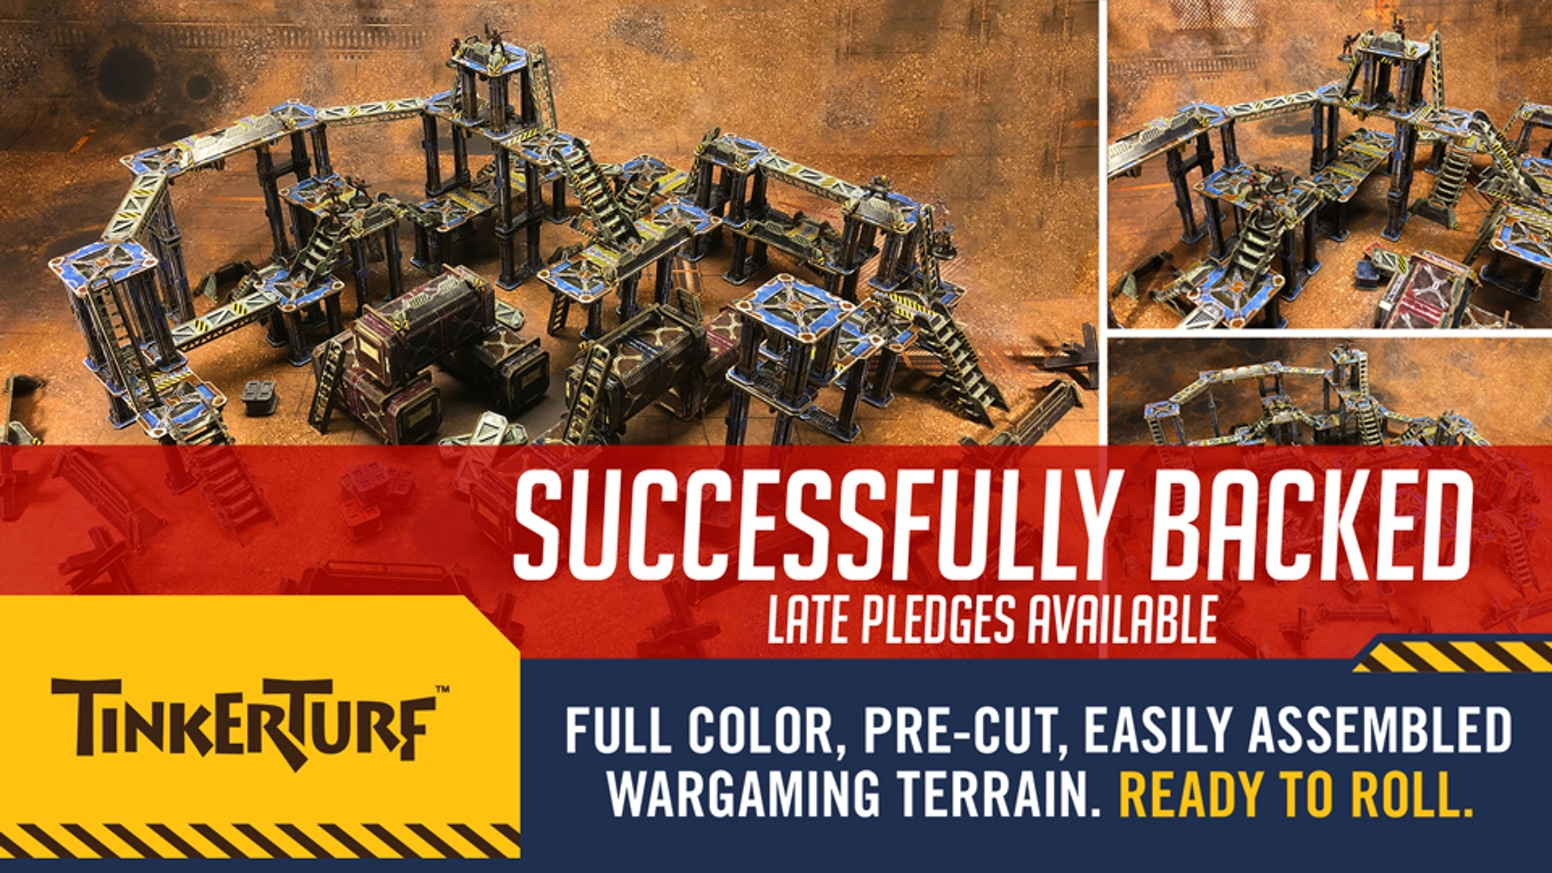 TinkerTurf - Full Color Wargaming Terrain by TinkerHouse Games